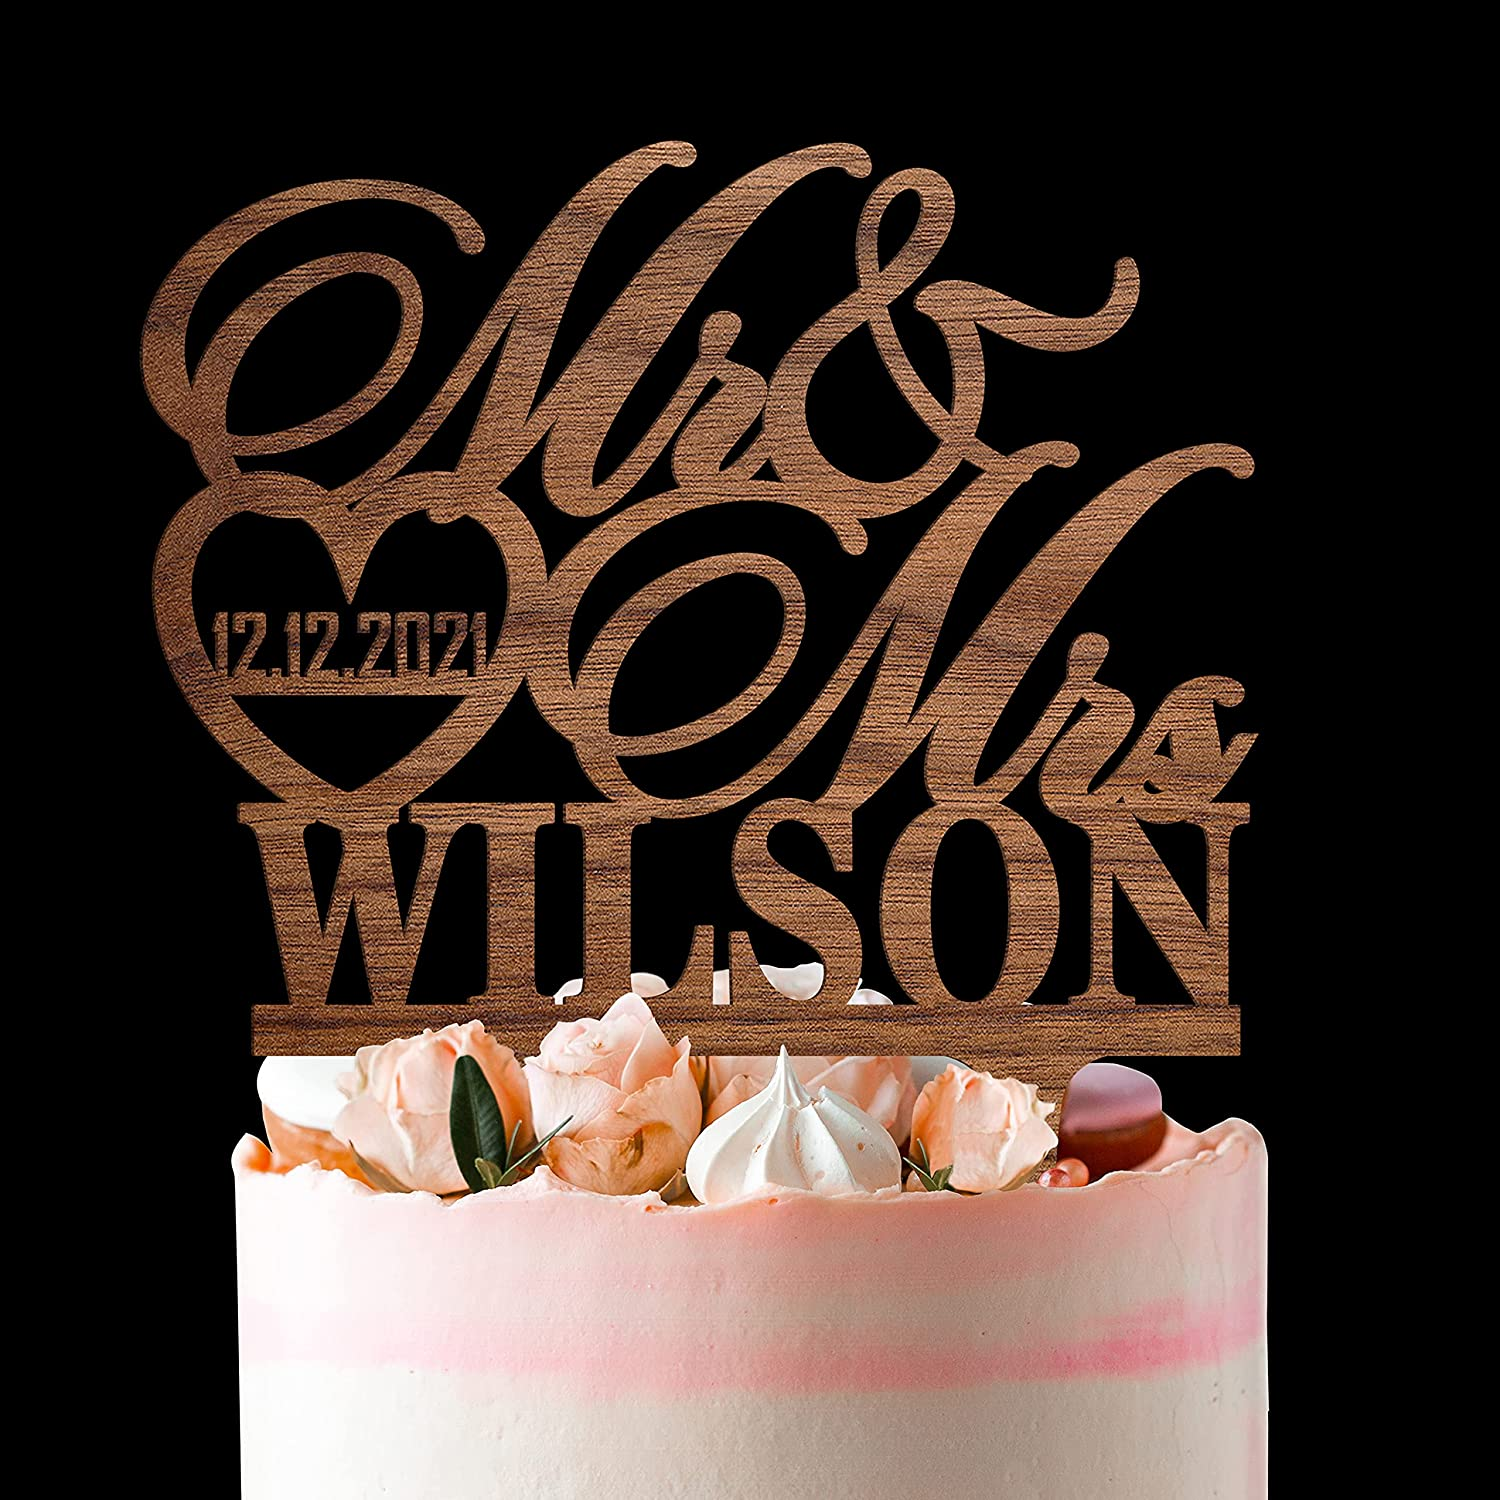 Personalized Wedding Cake Toppers - Mrs Cust half and lowest price Mr Topper